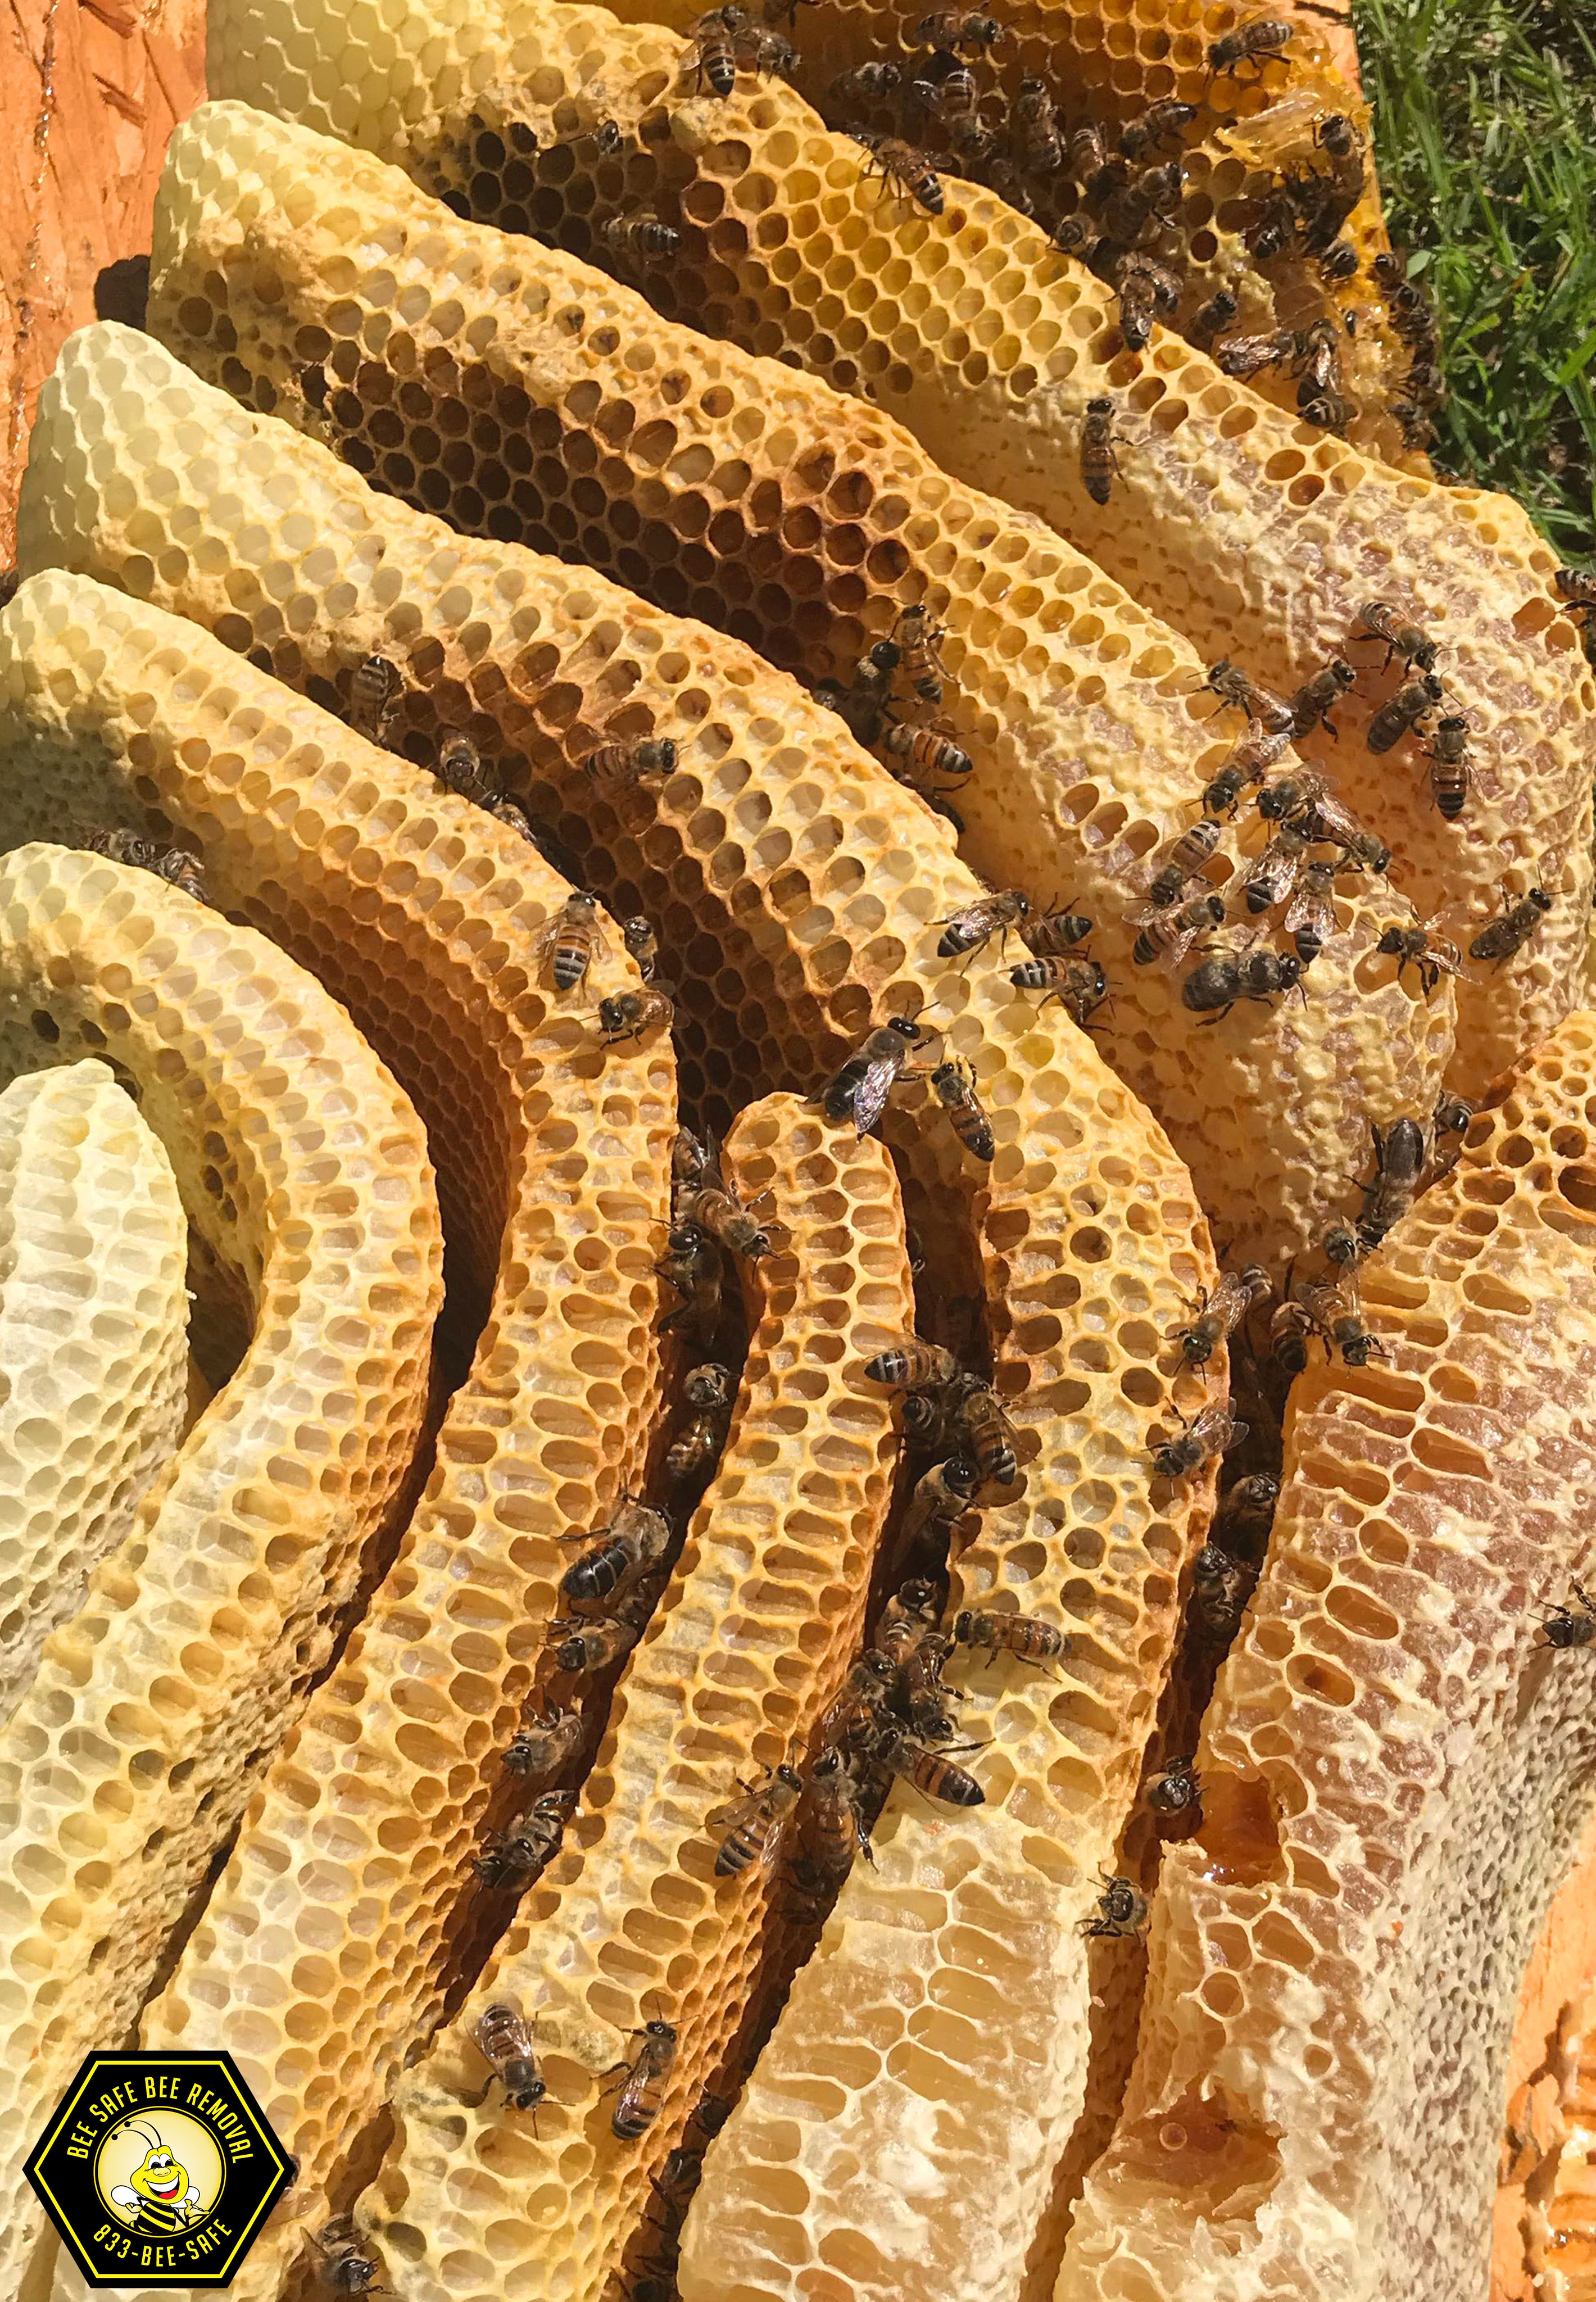 Thousands of bees removed from Plano, Texas